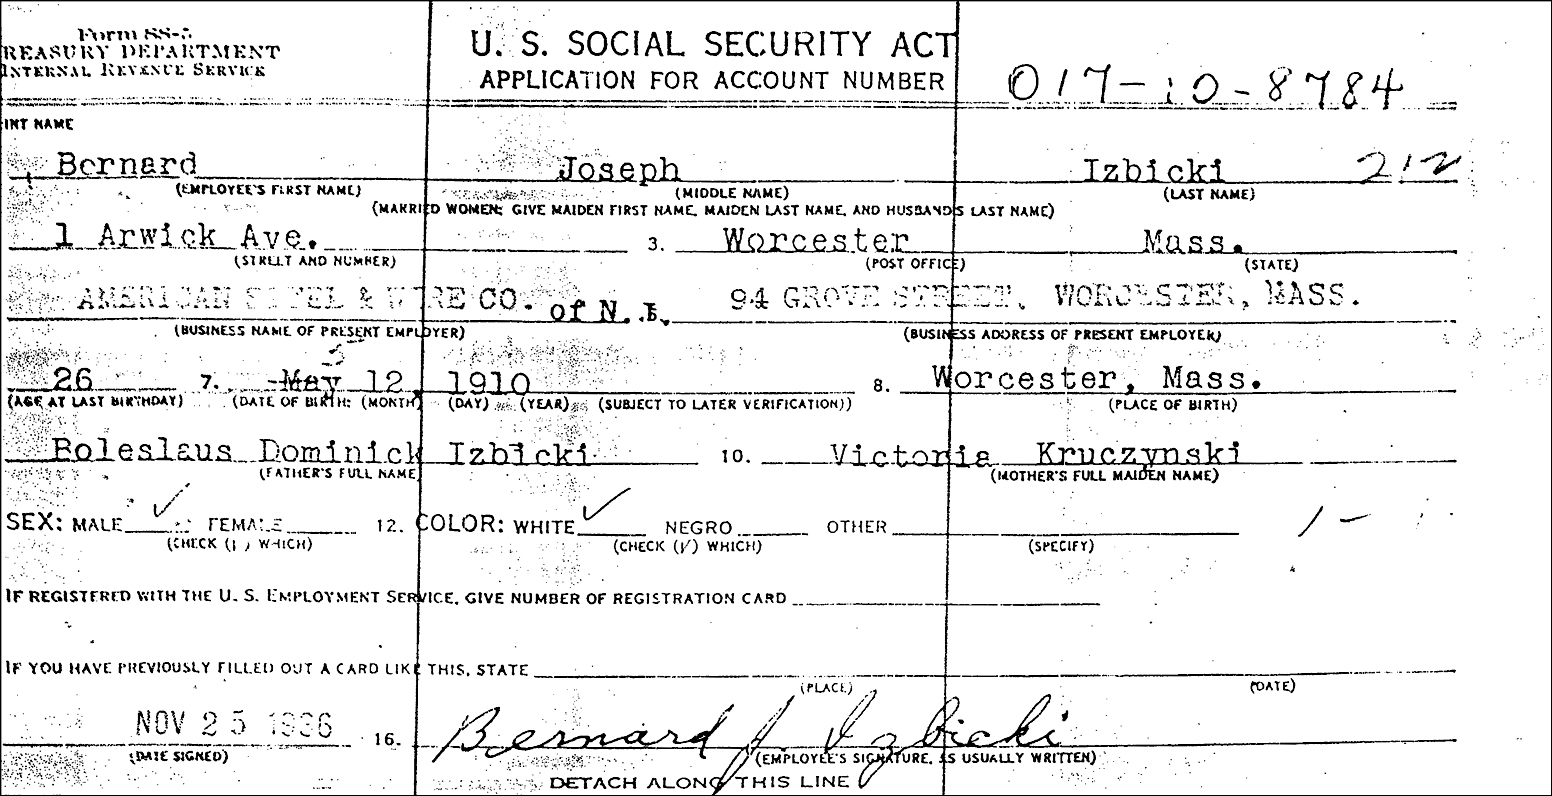 Application for Social Security Account Number for Bernard Joseph Izbicki